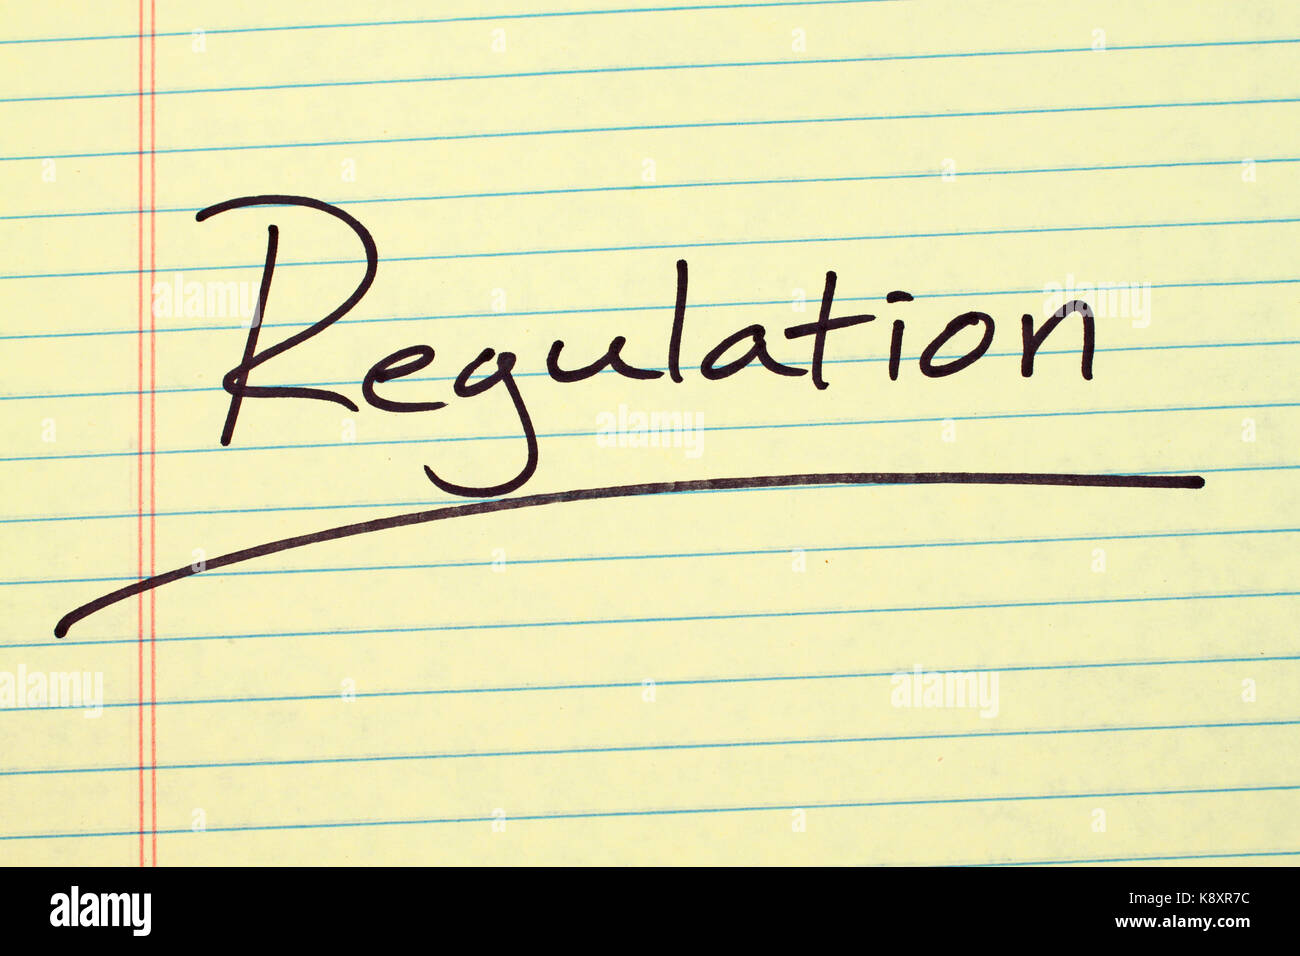 The word 'Regulation' underlined on a yellow legal pad - Stock Image